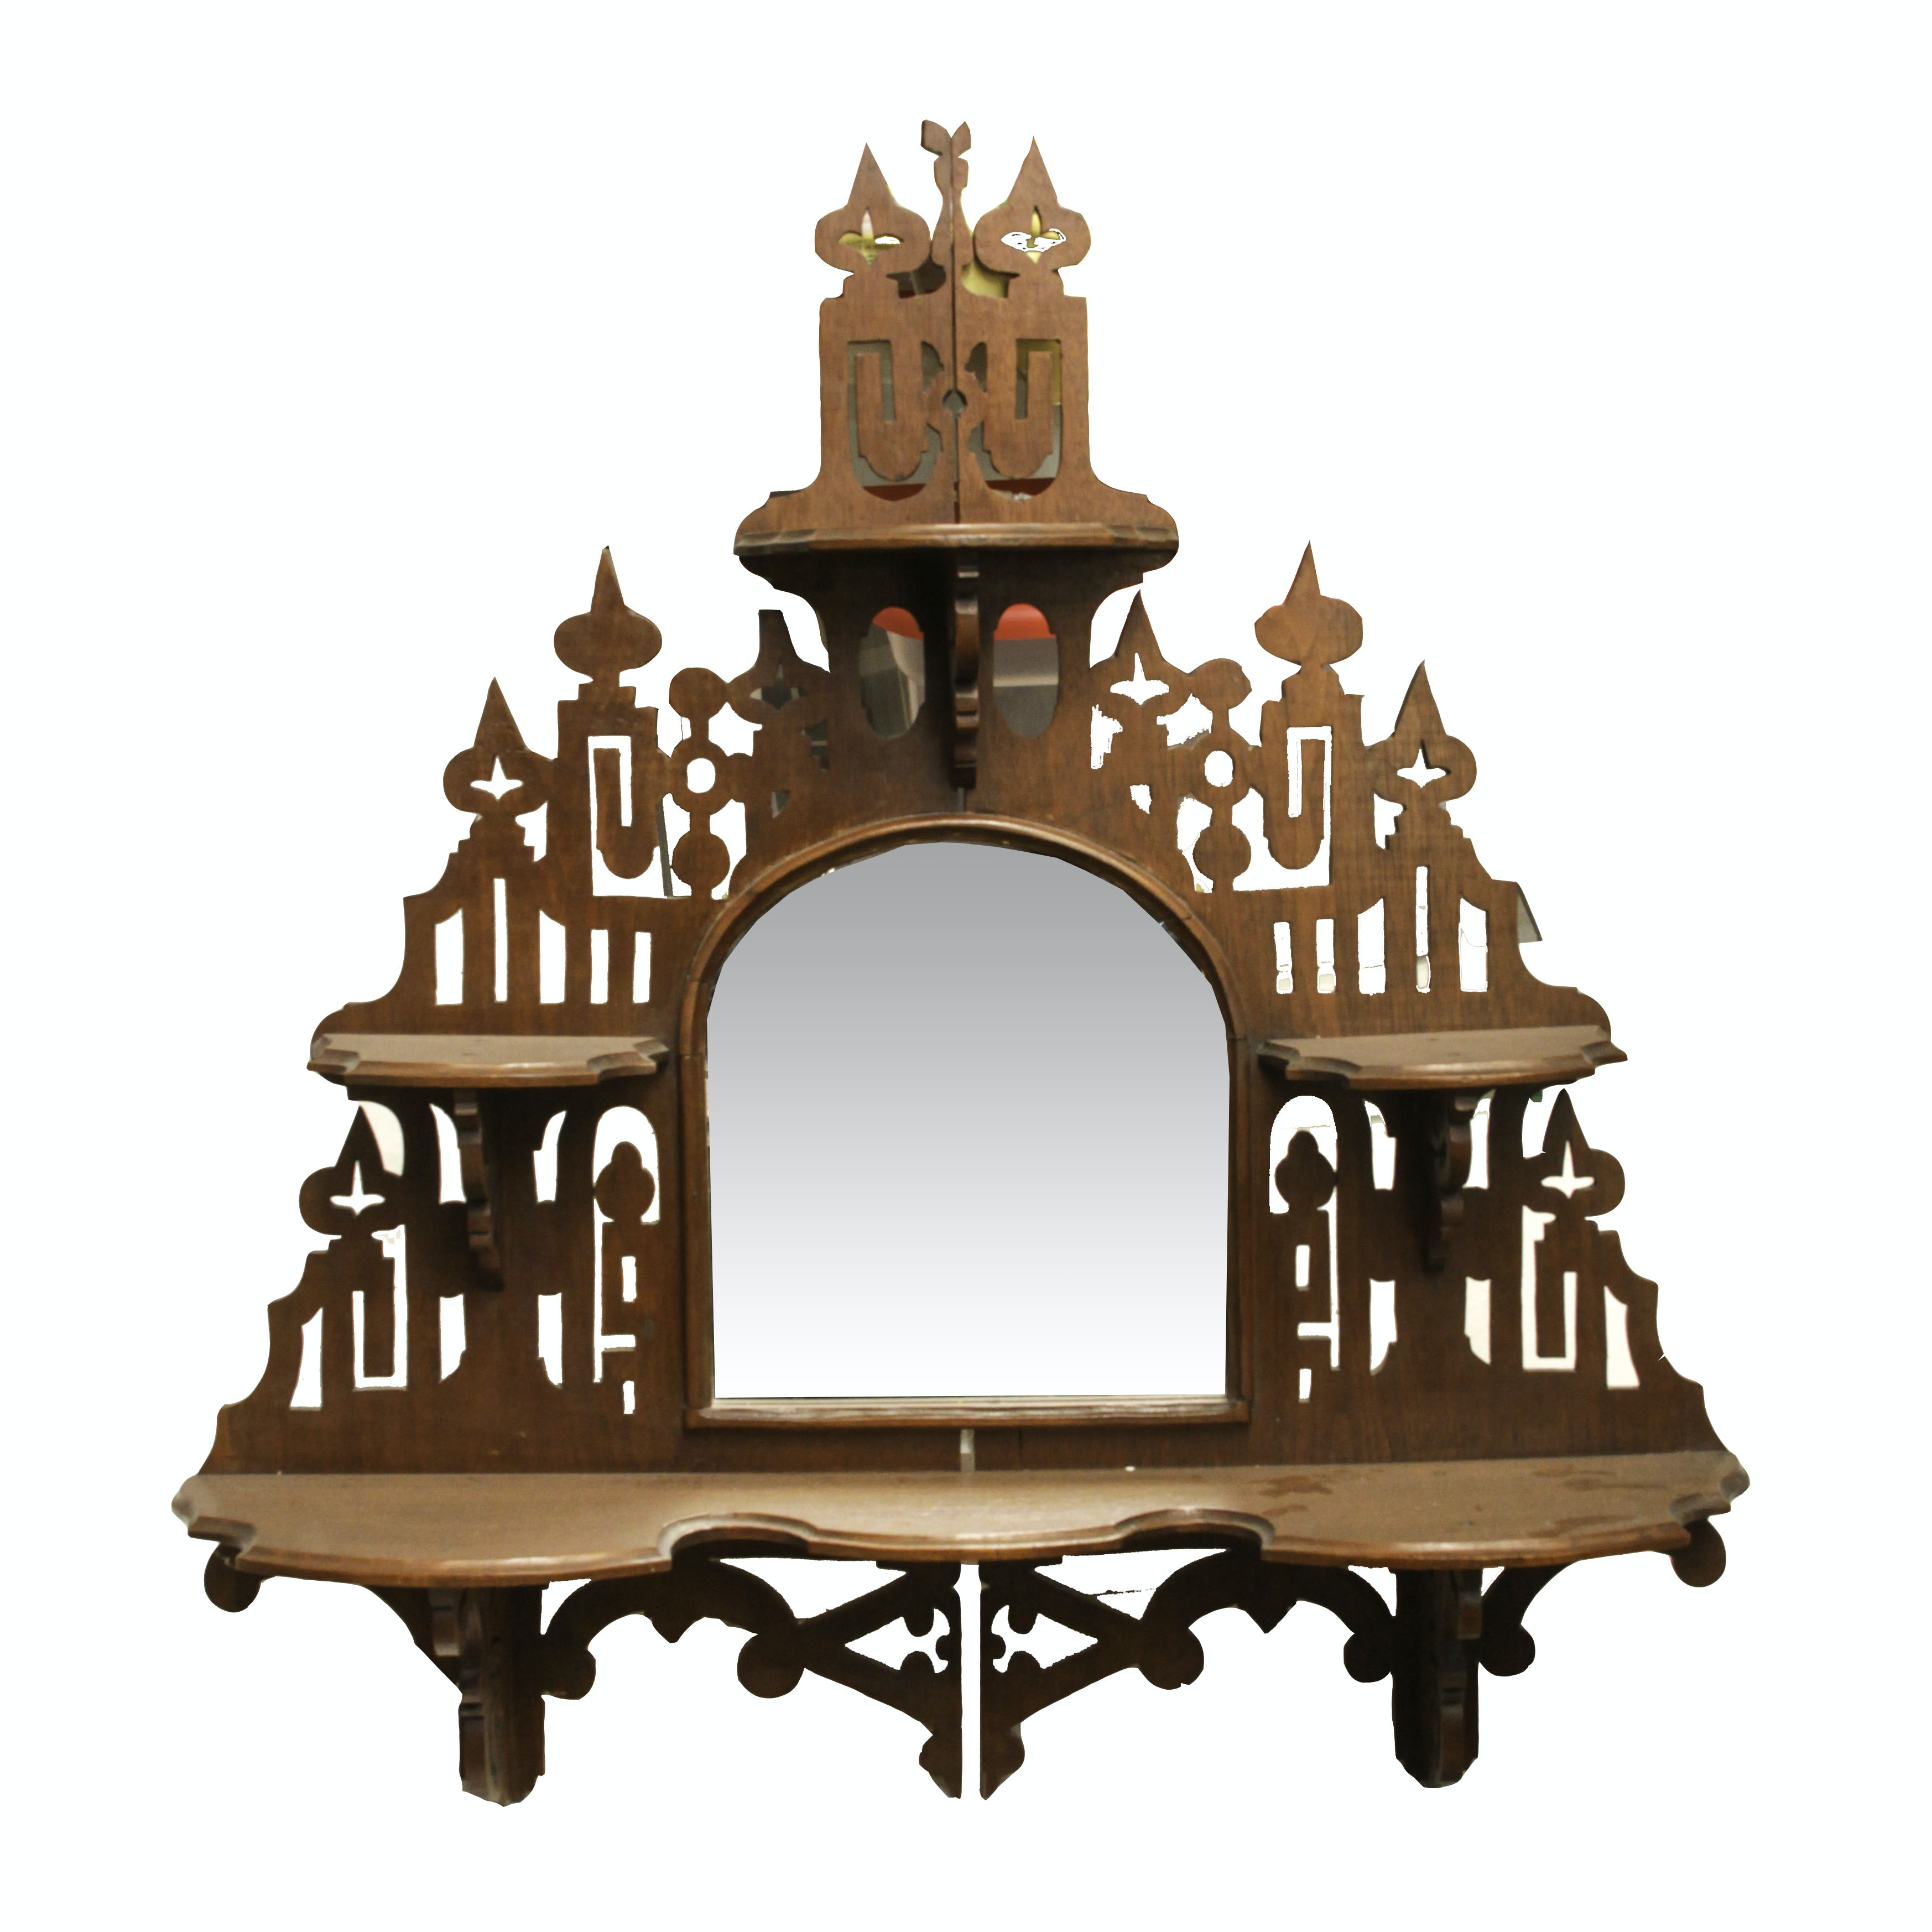 Antique Victorian Mirrored Wall Shelf